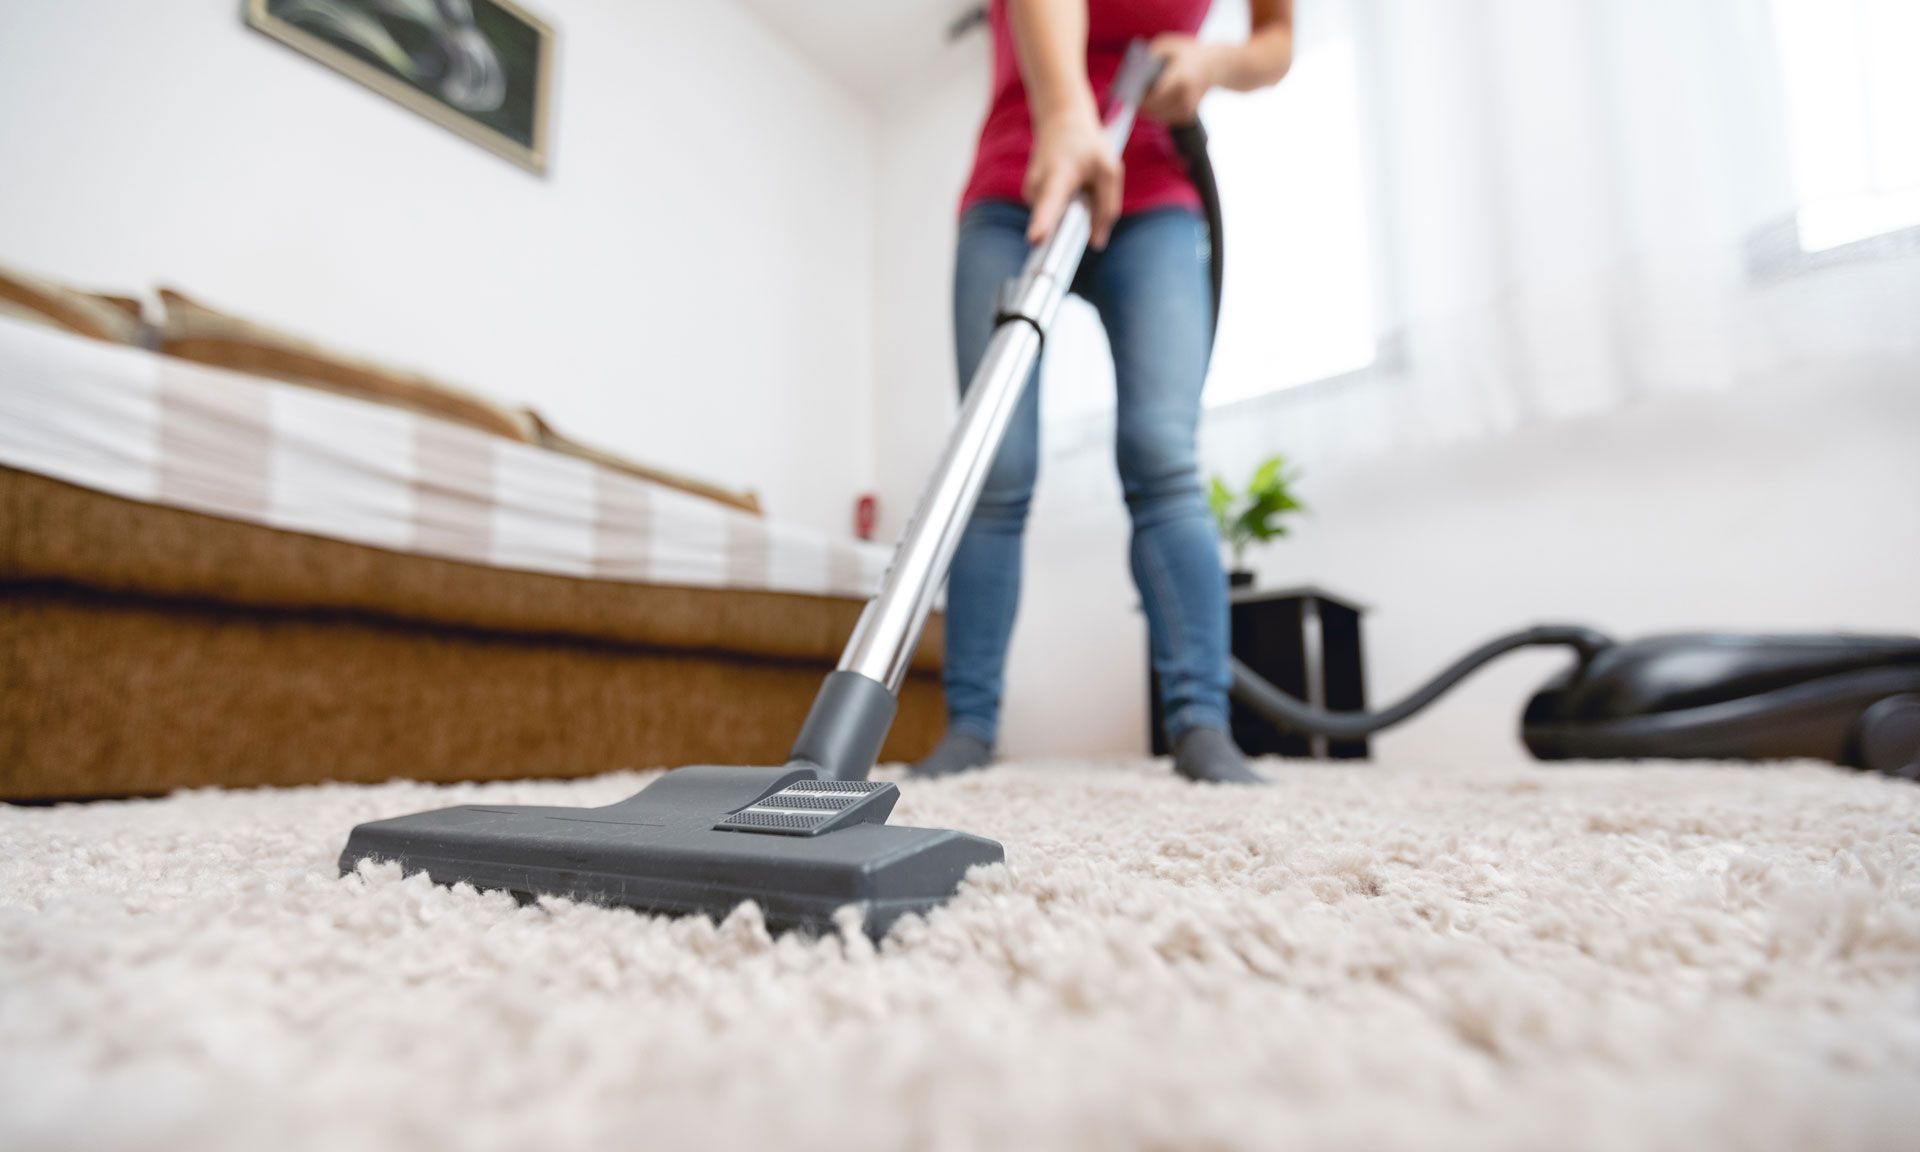 Why a HEPA filter doesn't guarantee your vacuum cleaner will